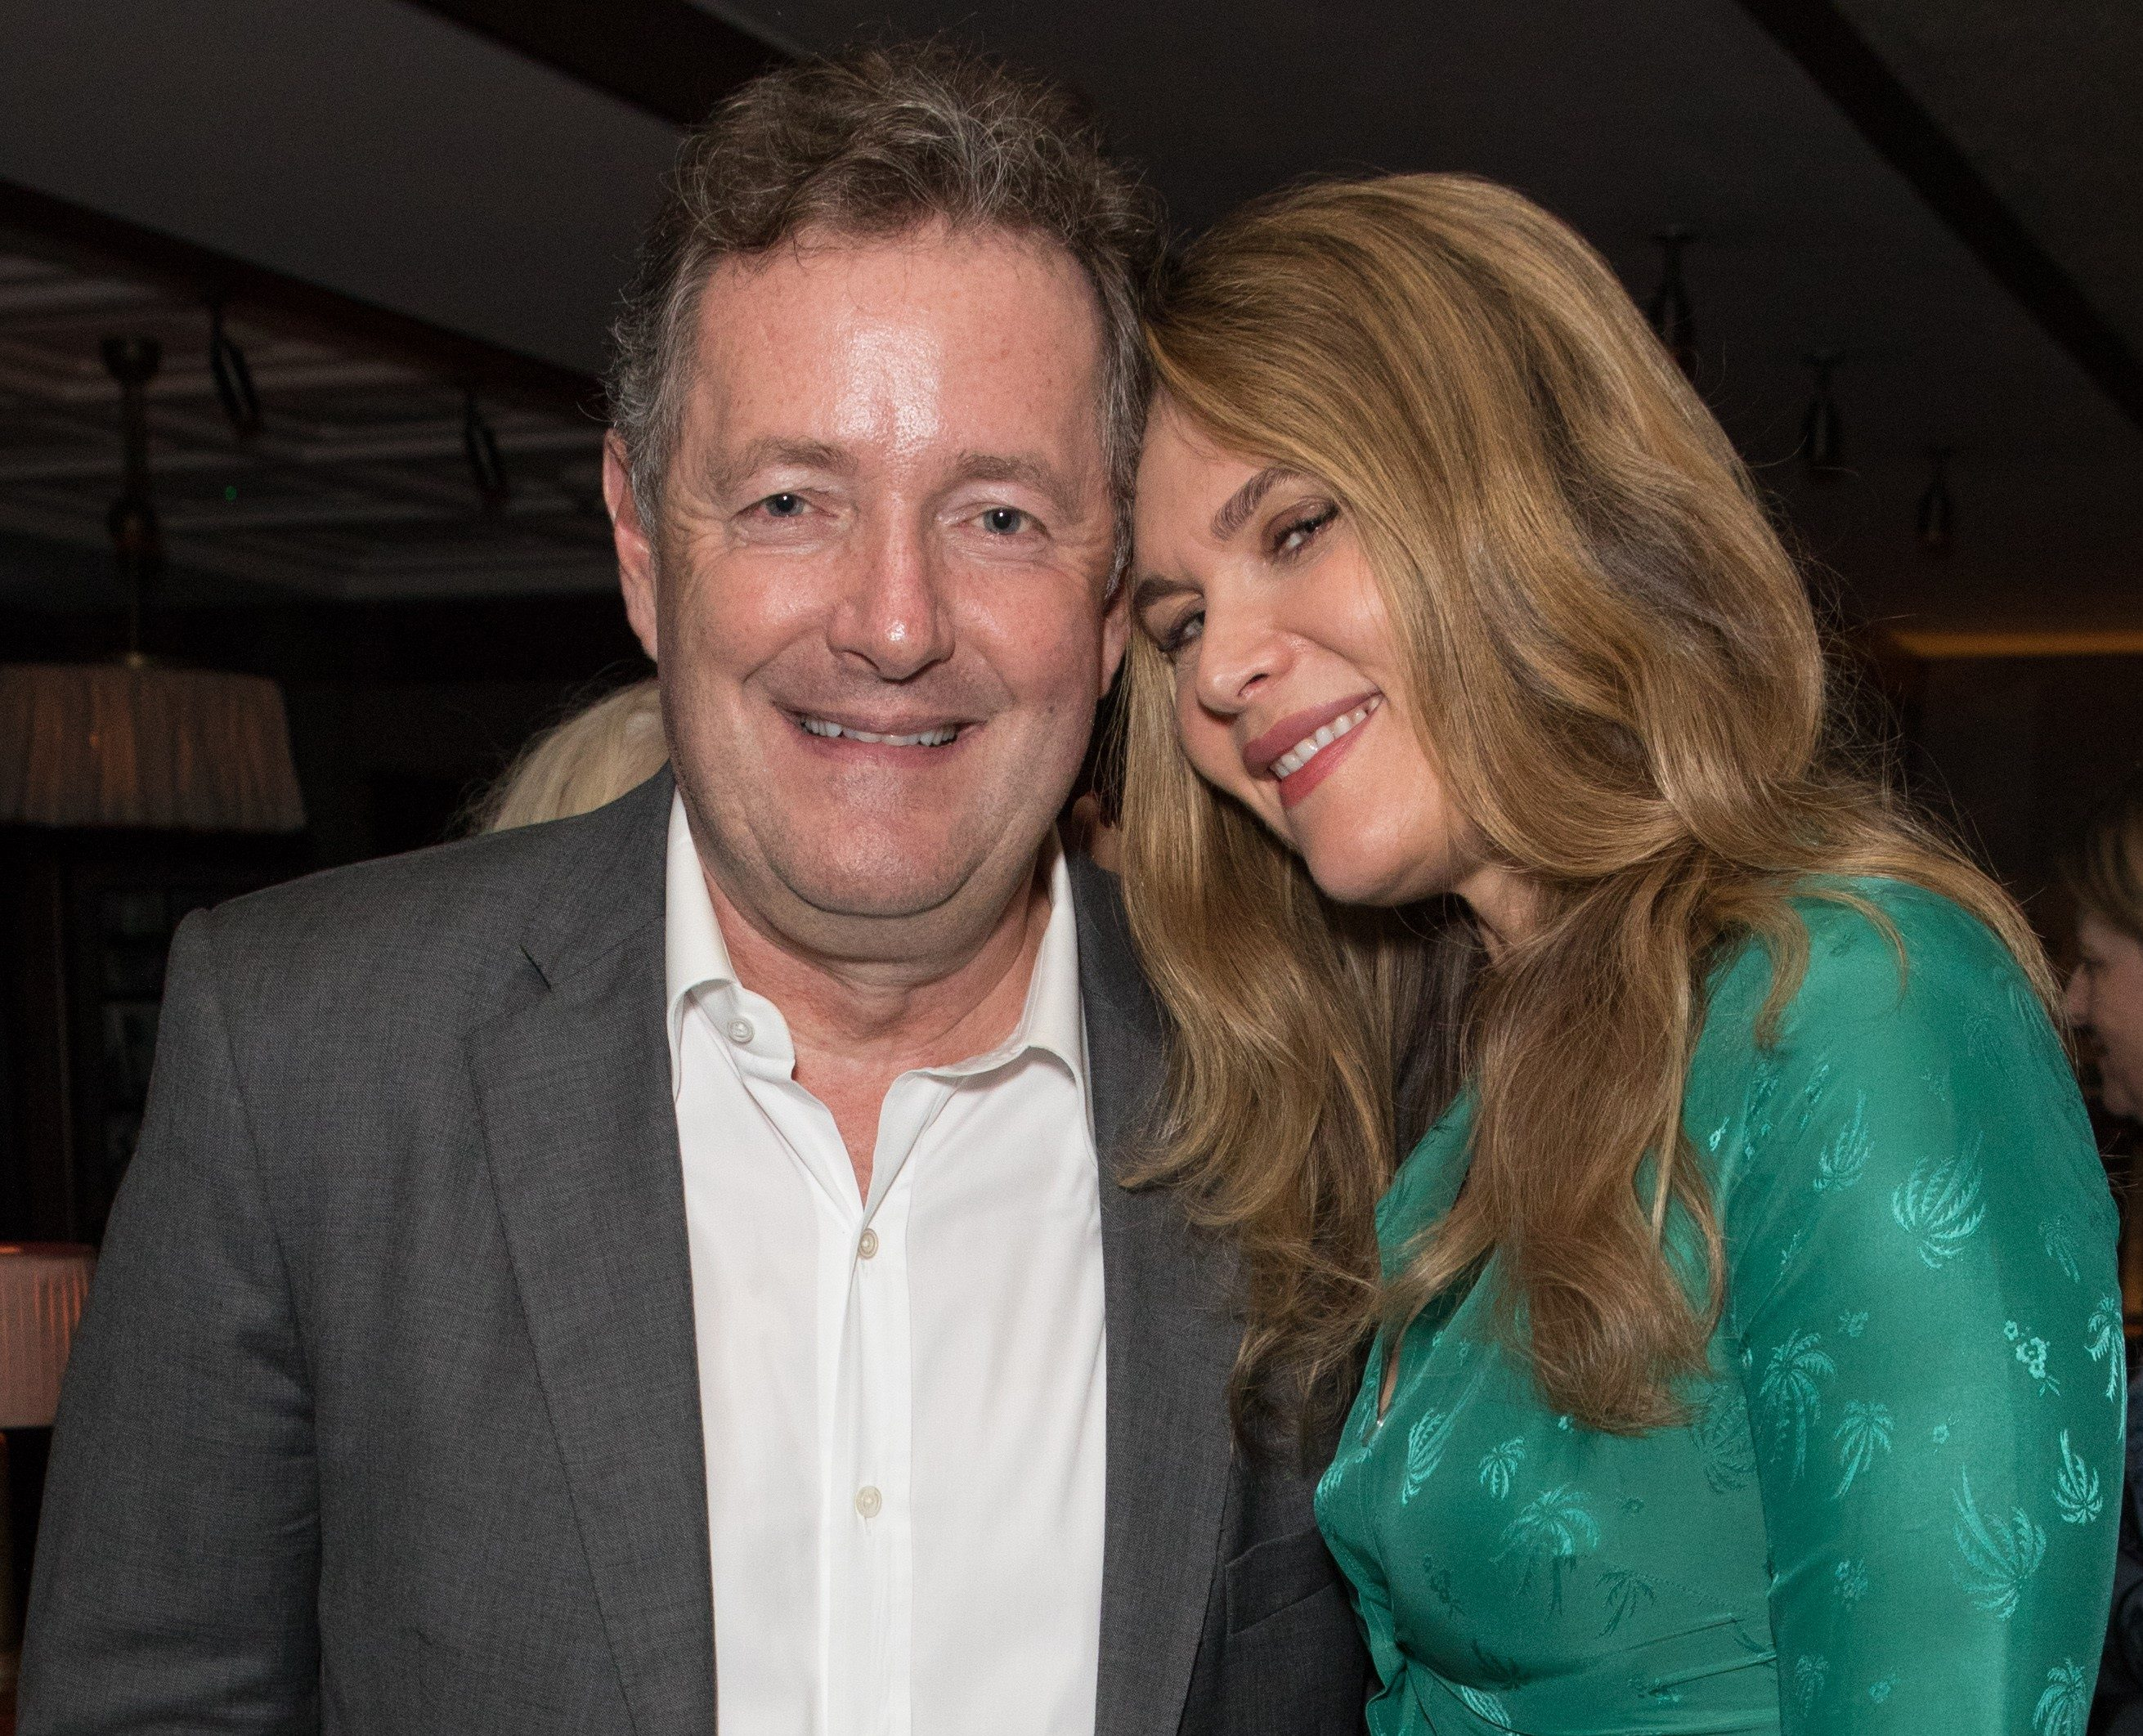 Piers Morgan family tree - sons, daughter and wife Celia Walden